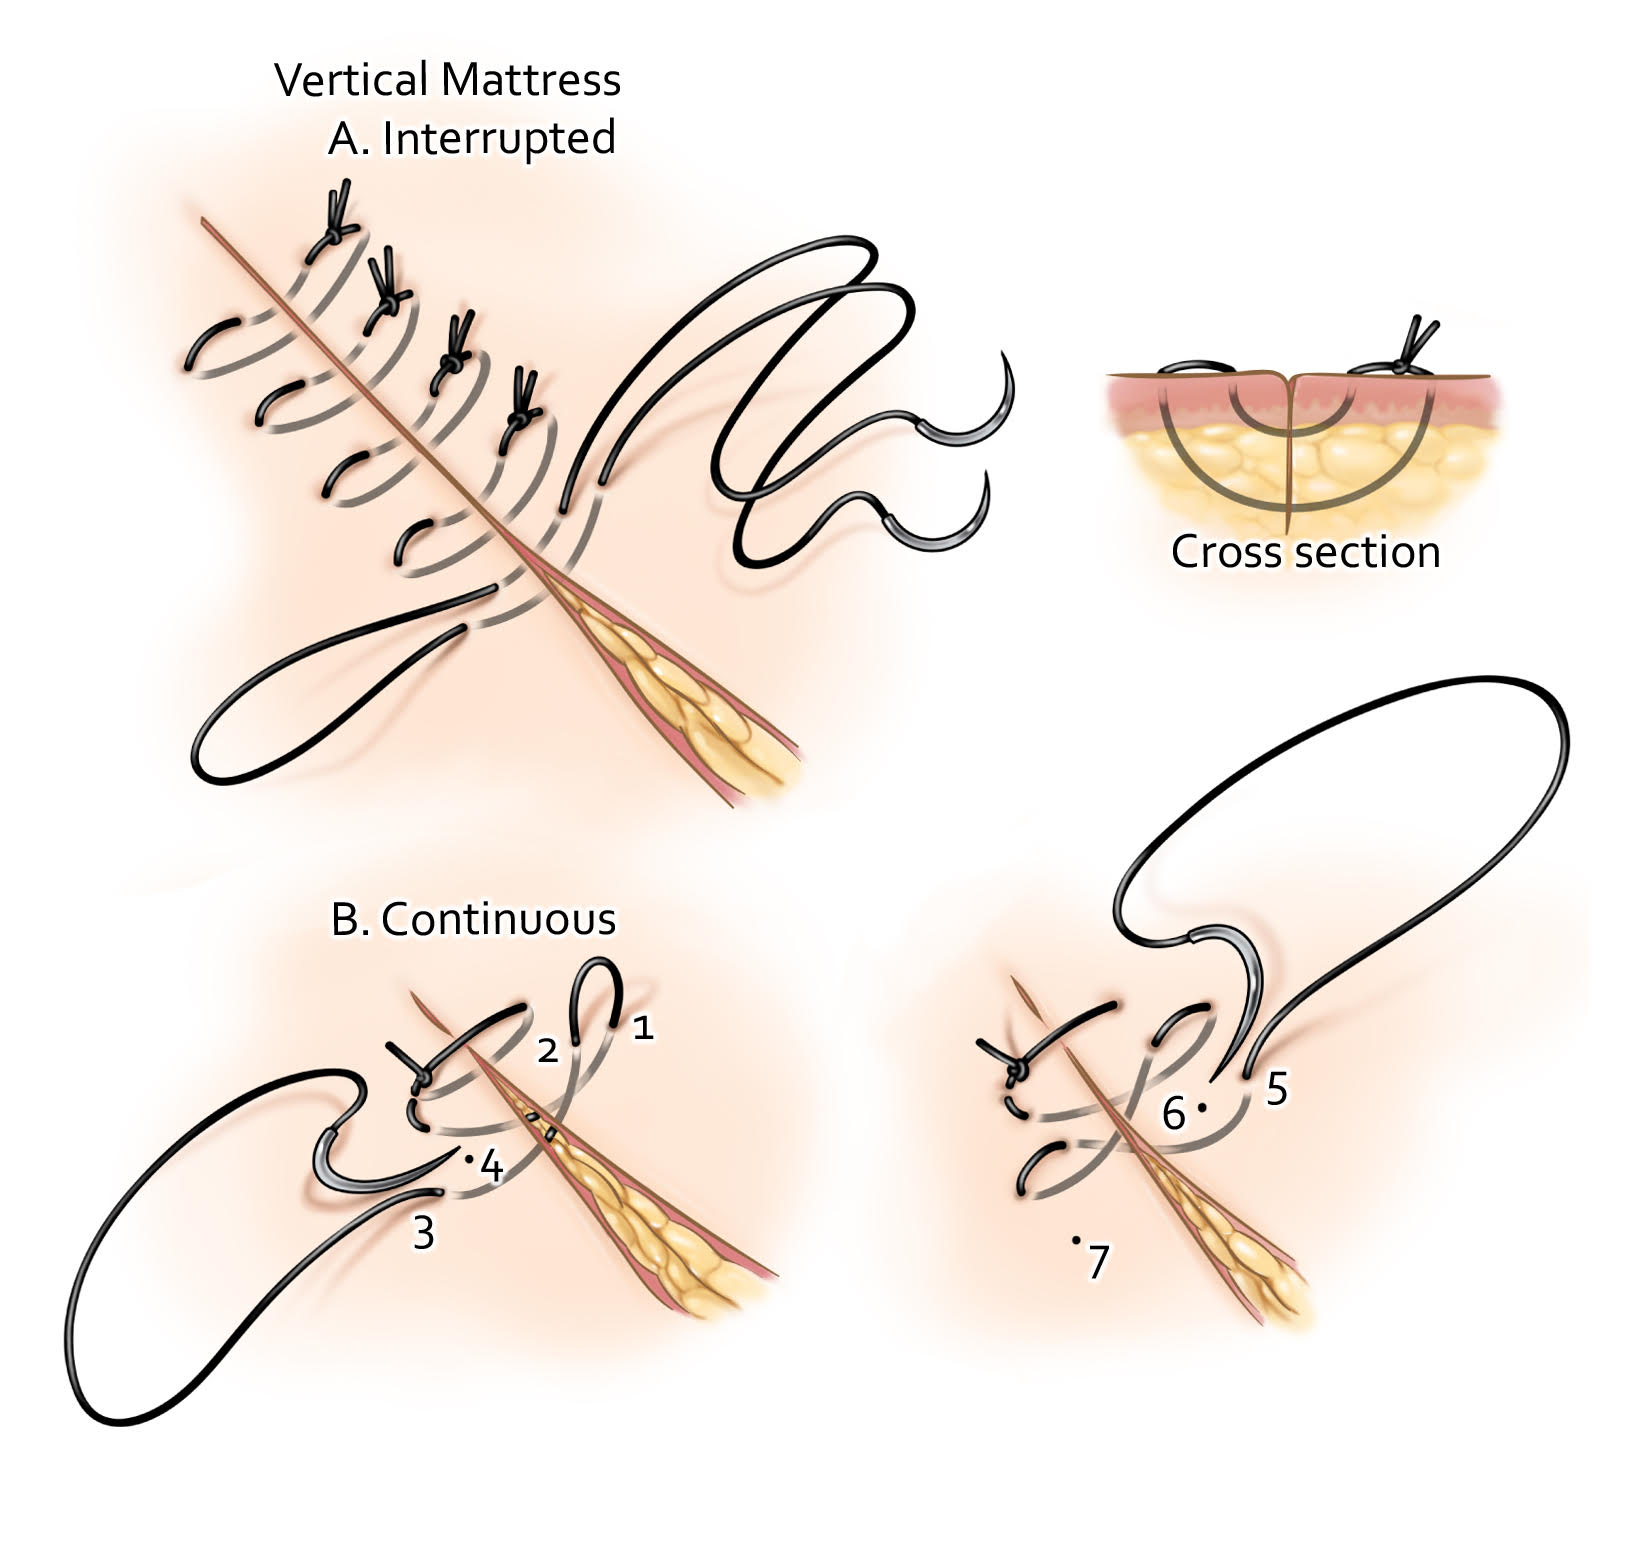 Figure 6: Vertical mattress suturing results in better eversion of the tissue and therefore can be a good strategy for augmenting wound closure when the quality of the tissues involved is tenuous. This advantage is provided by the combination of both deep dermal and epidermal suturing.  I use vertical interrupted mattress suturing for redo craniotomies where the skin edges are not as healthy and accurate approximation of the skin edges is critical for healing.